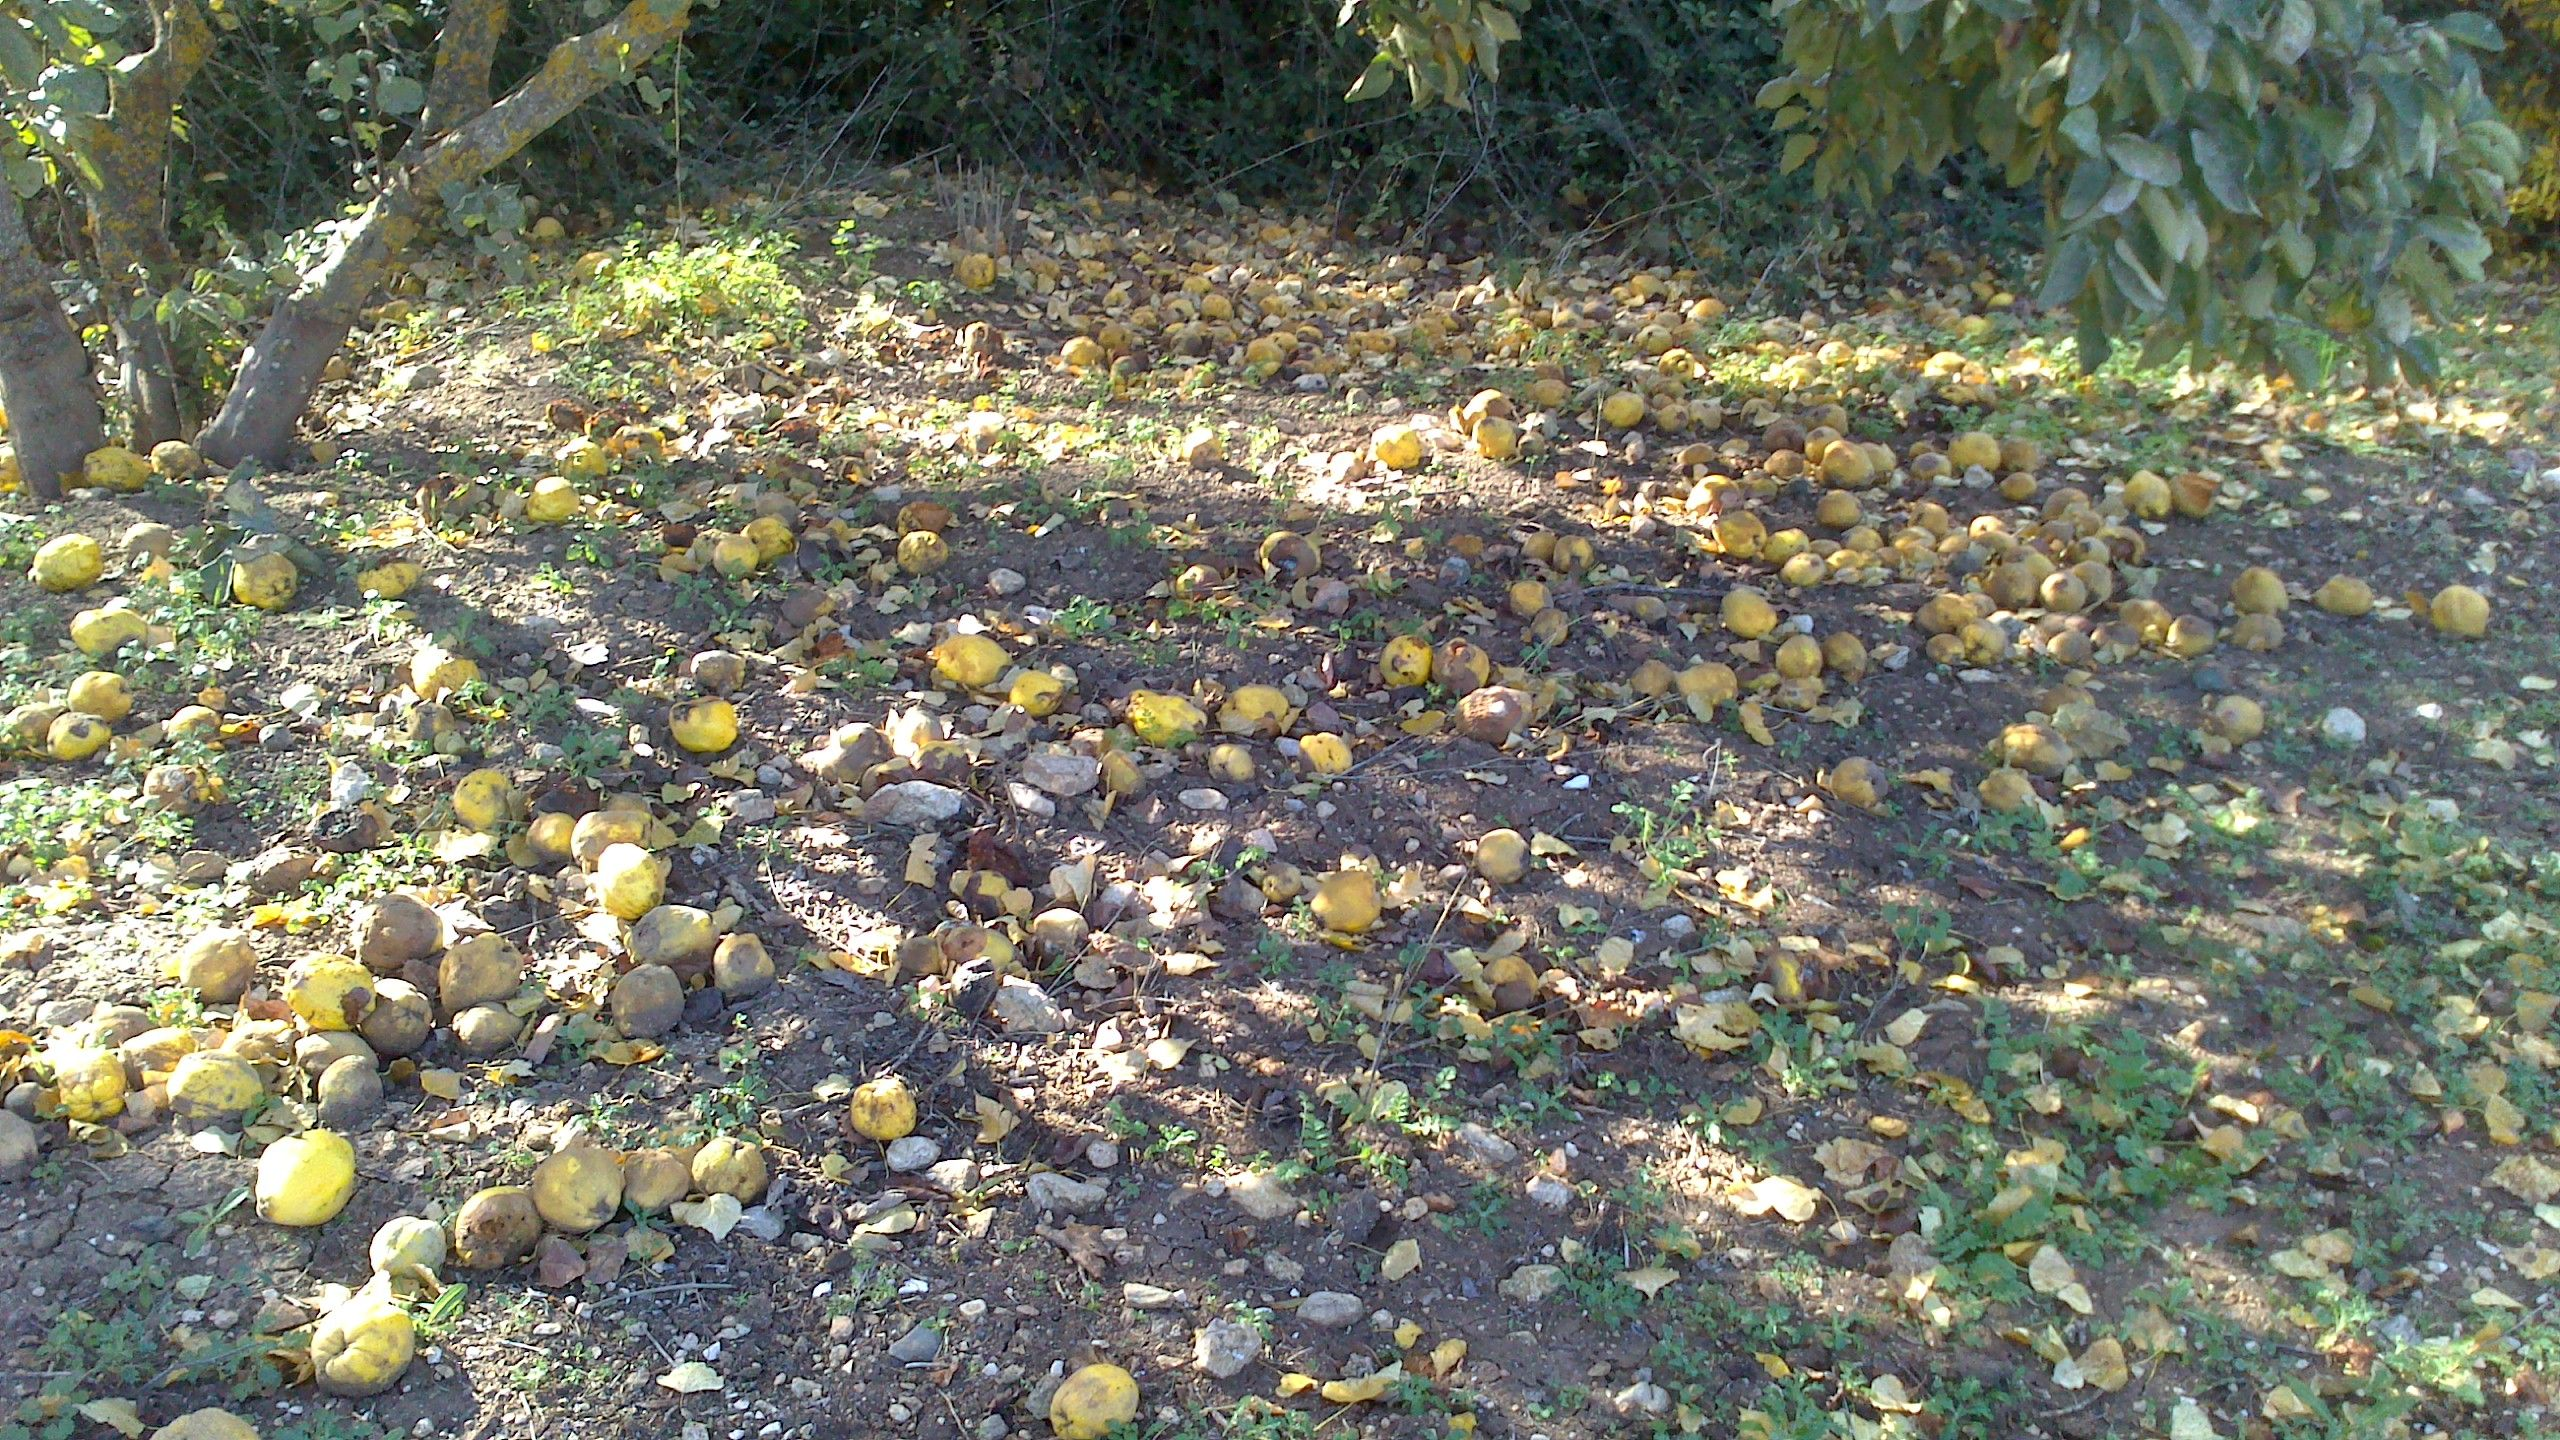 Windfall of Membrillos (Quinces) after the sharp winds this week.